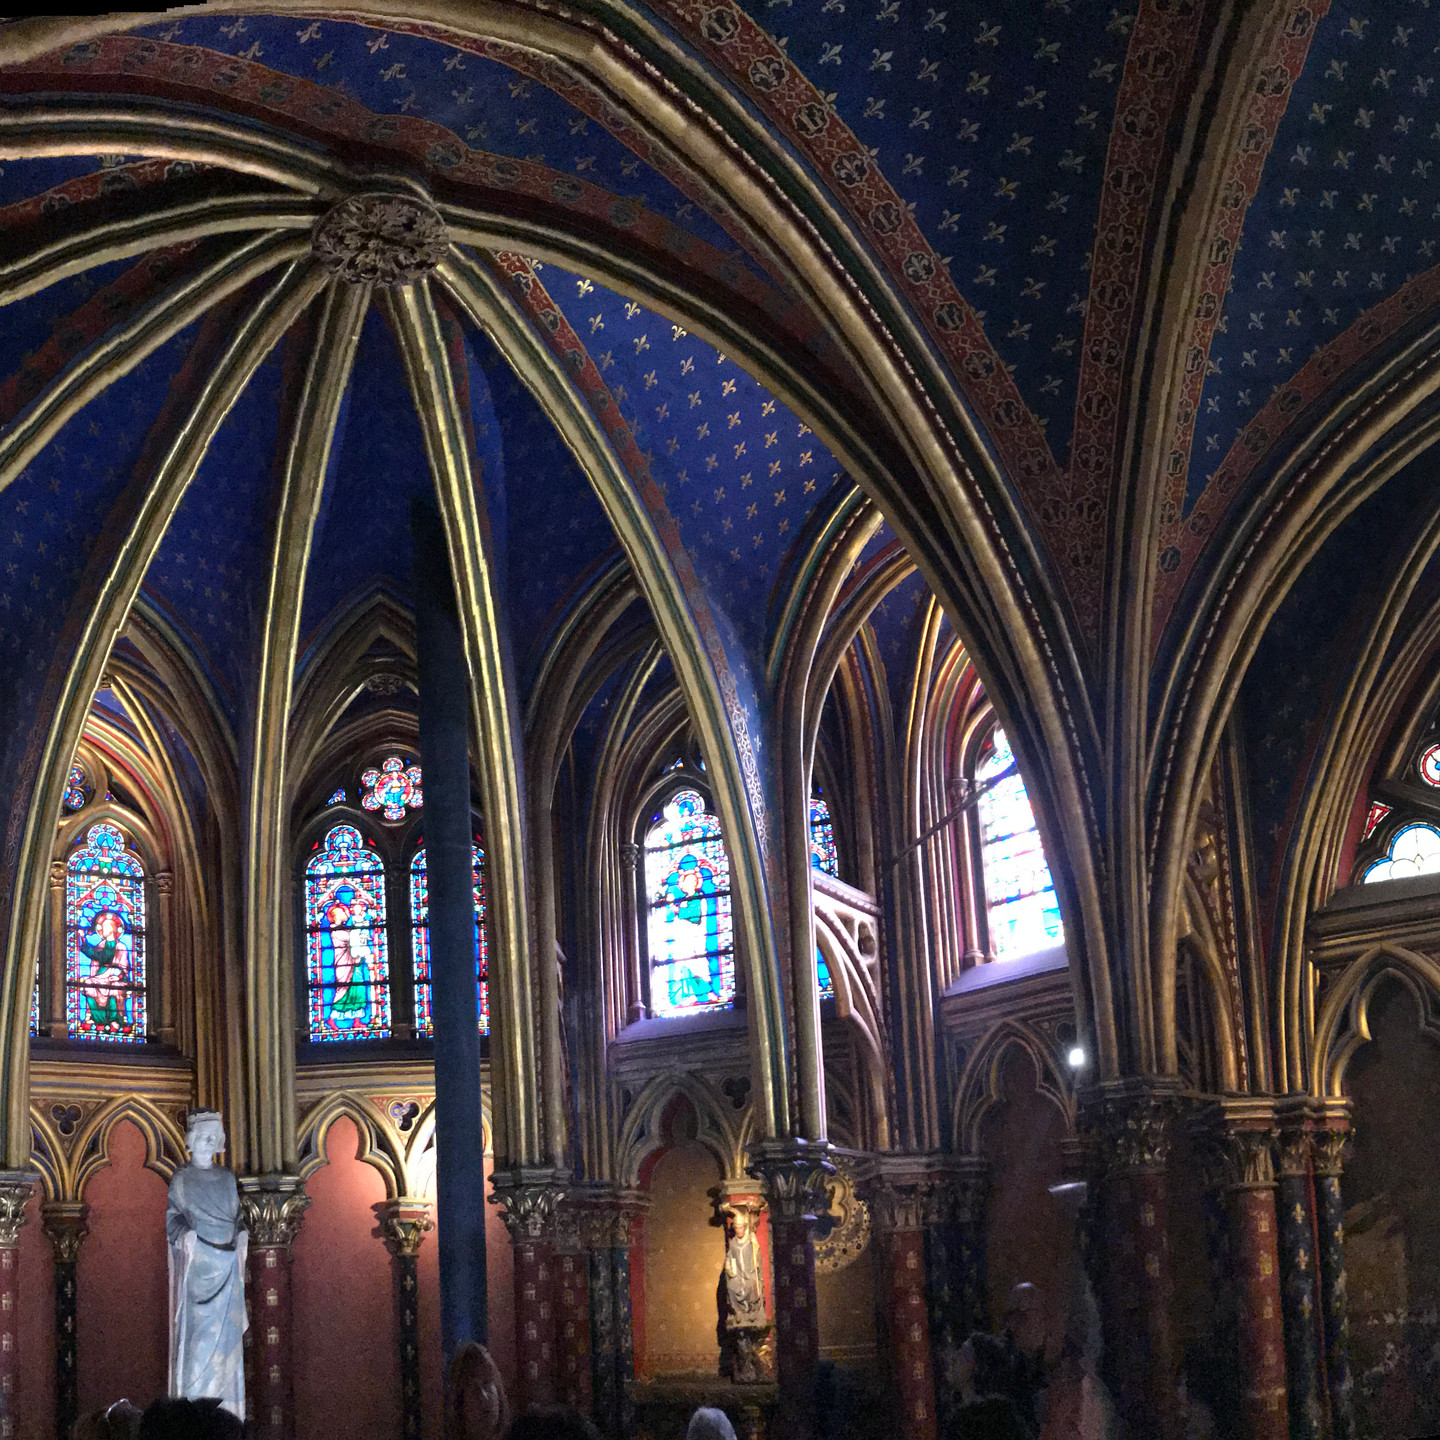 Vaulted Ceiling and Stained Glass at Sainte Chapelle in Paris